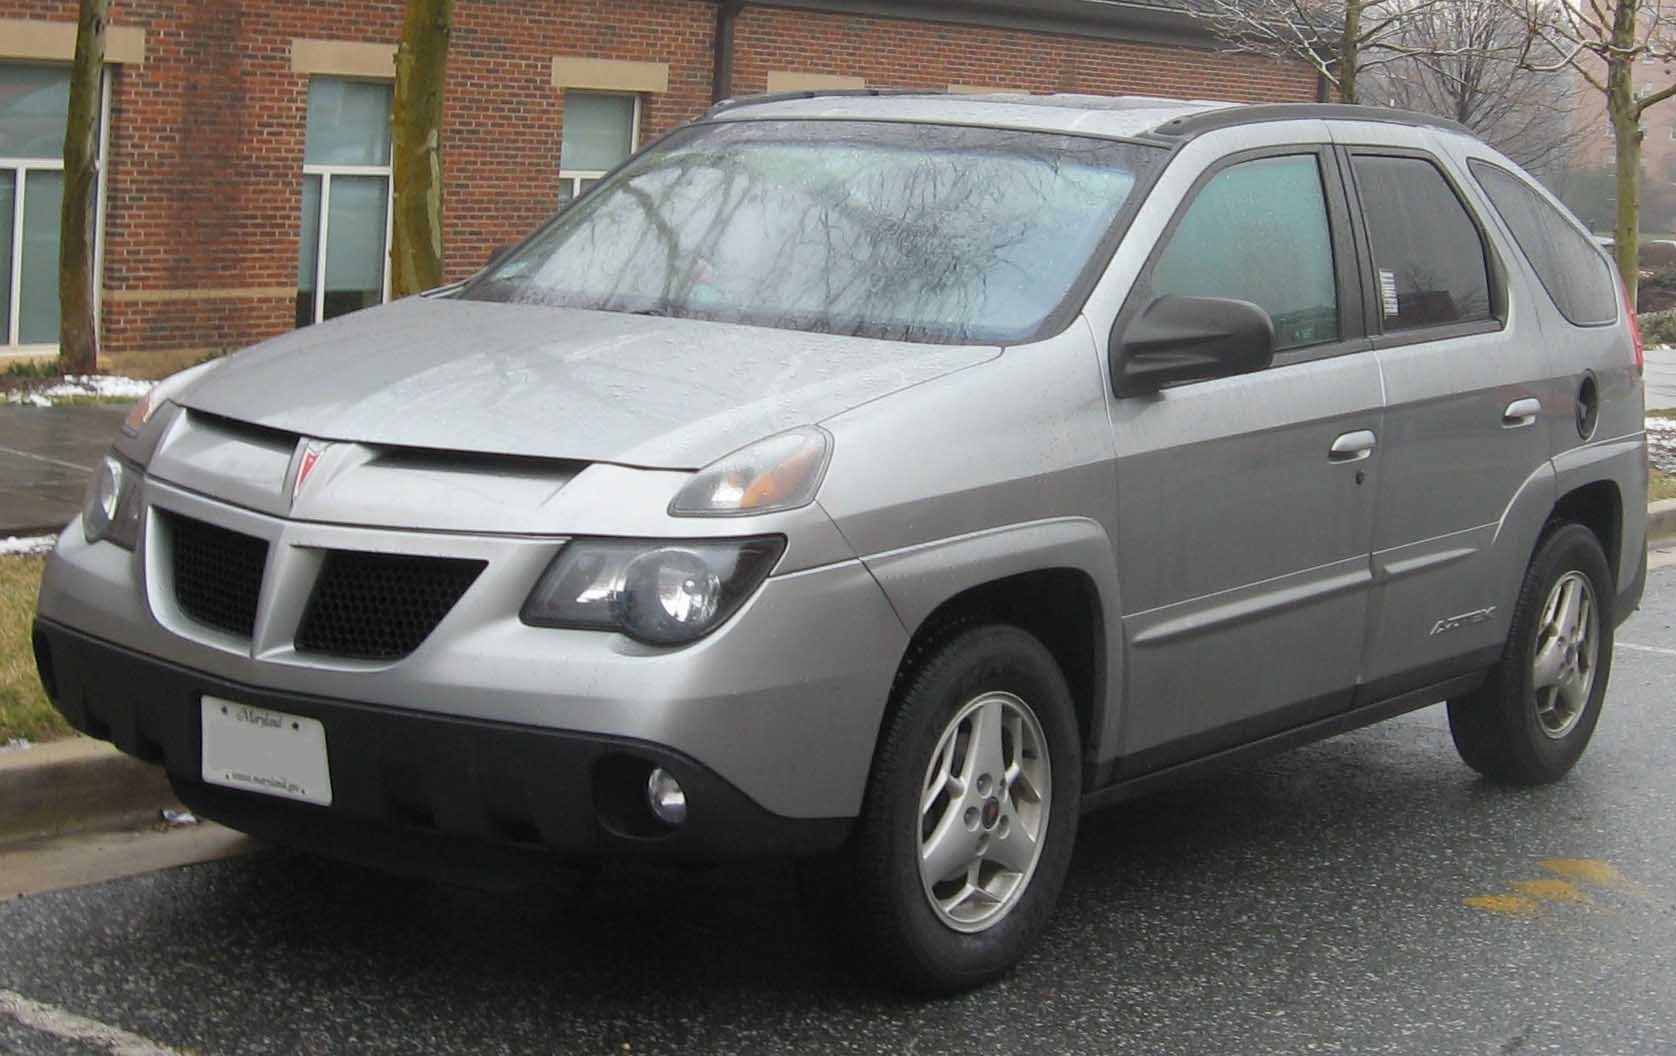 Pontiac Aztek (photo via Wikipedia)